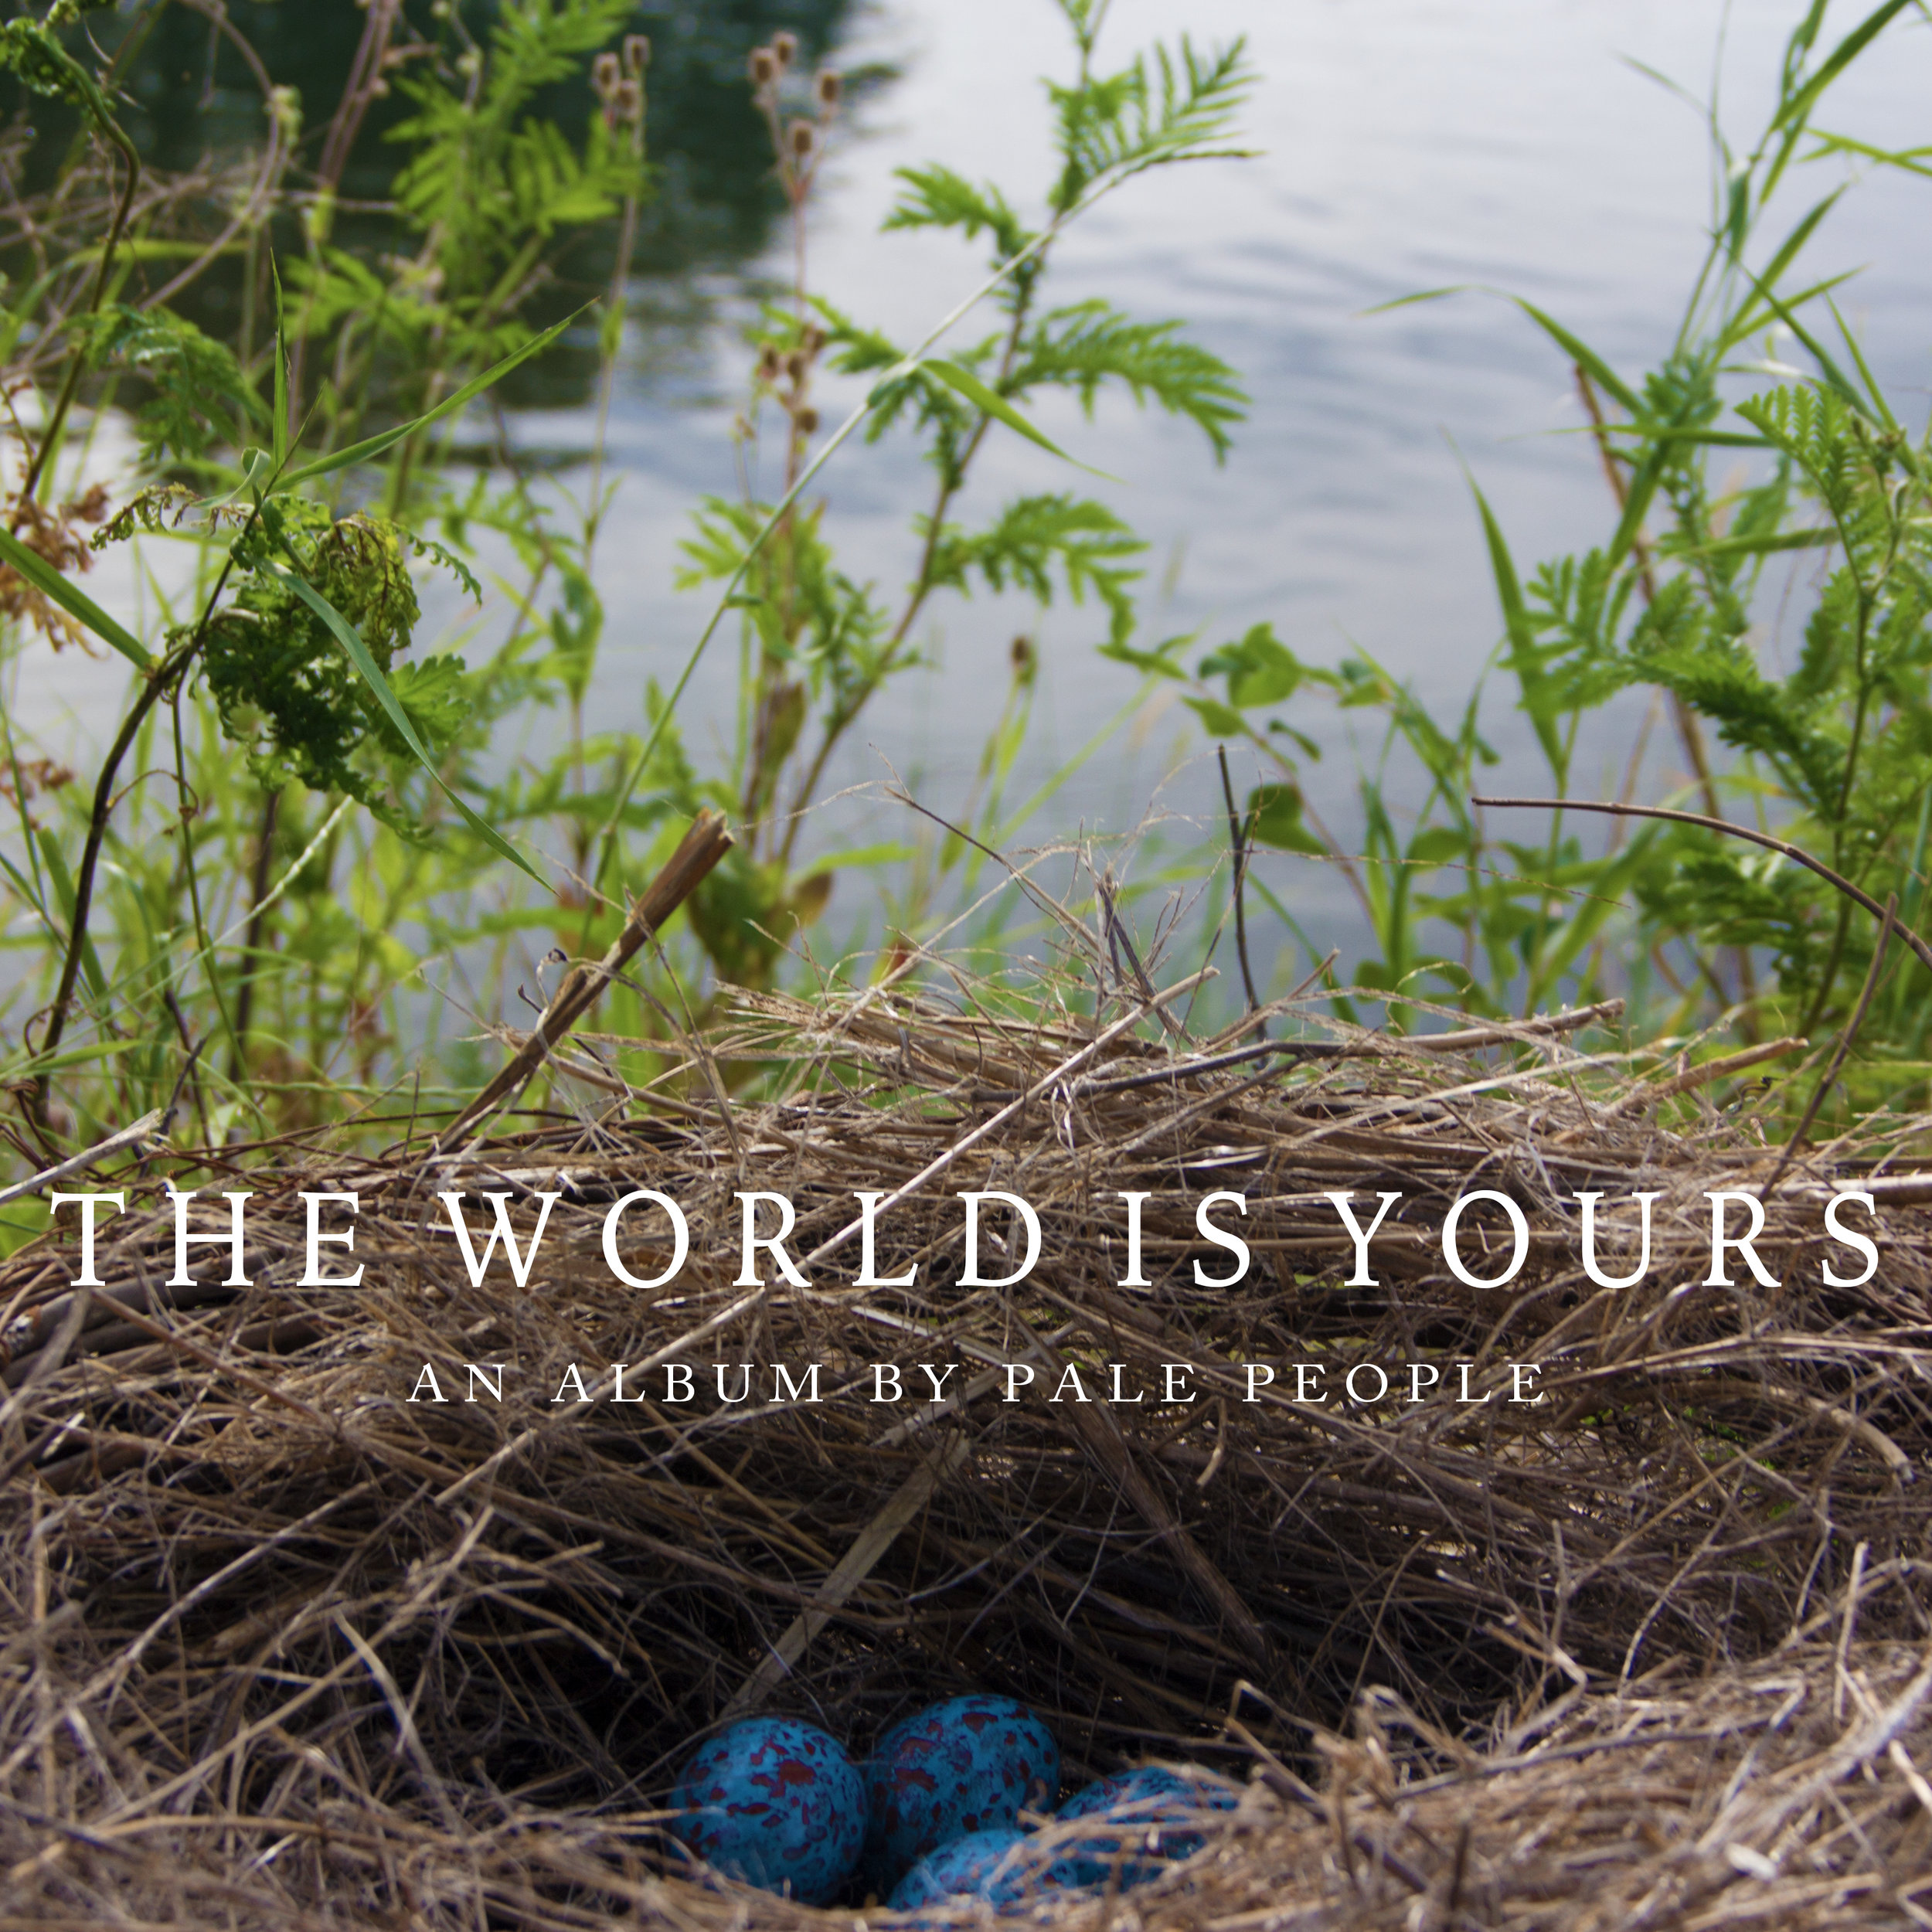 The World is Yours Album Cover Cropped.jpg